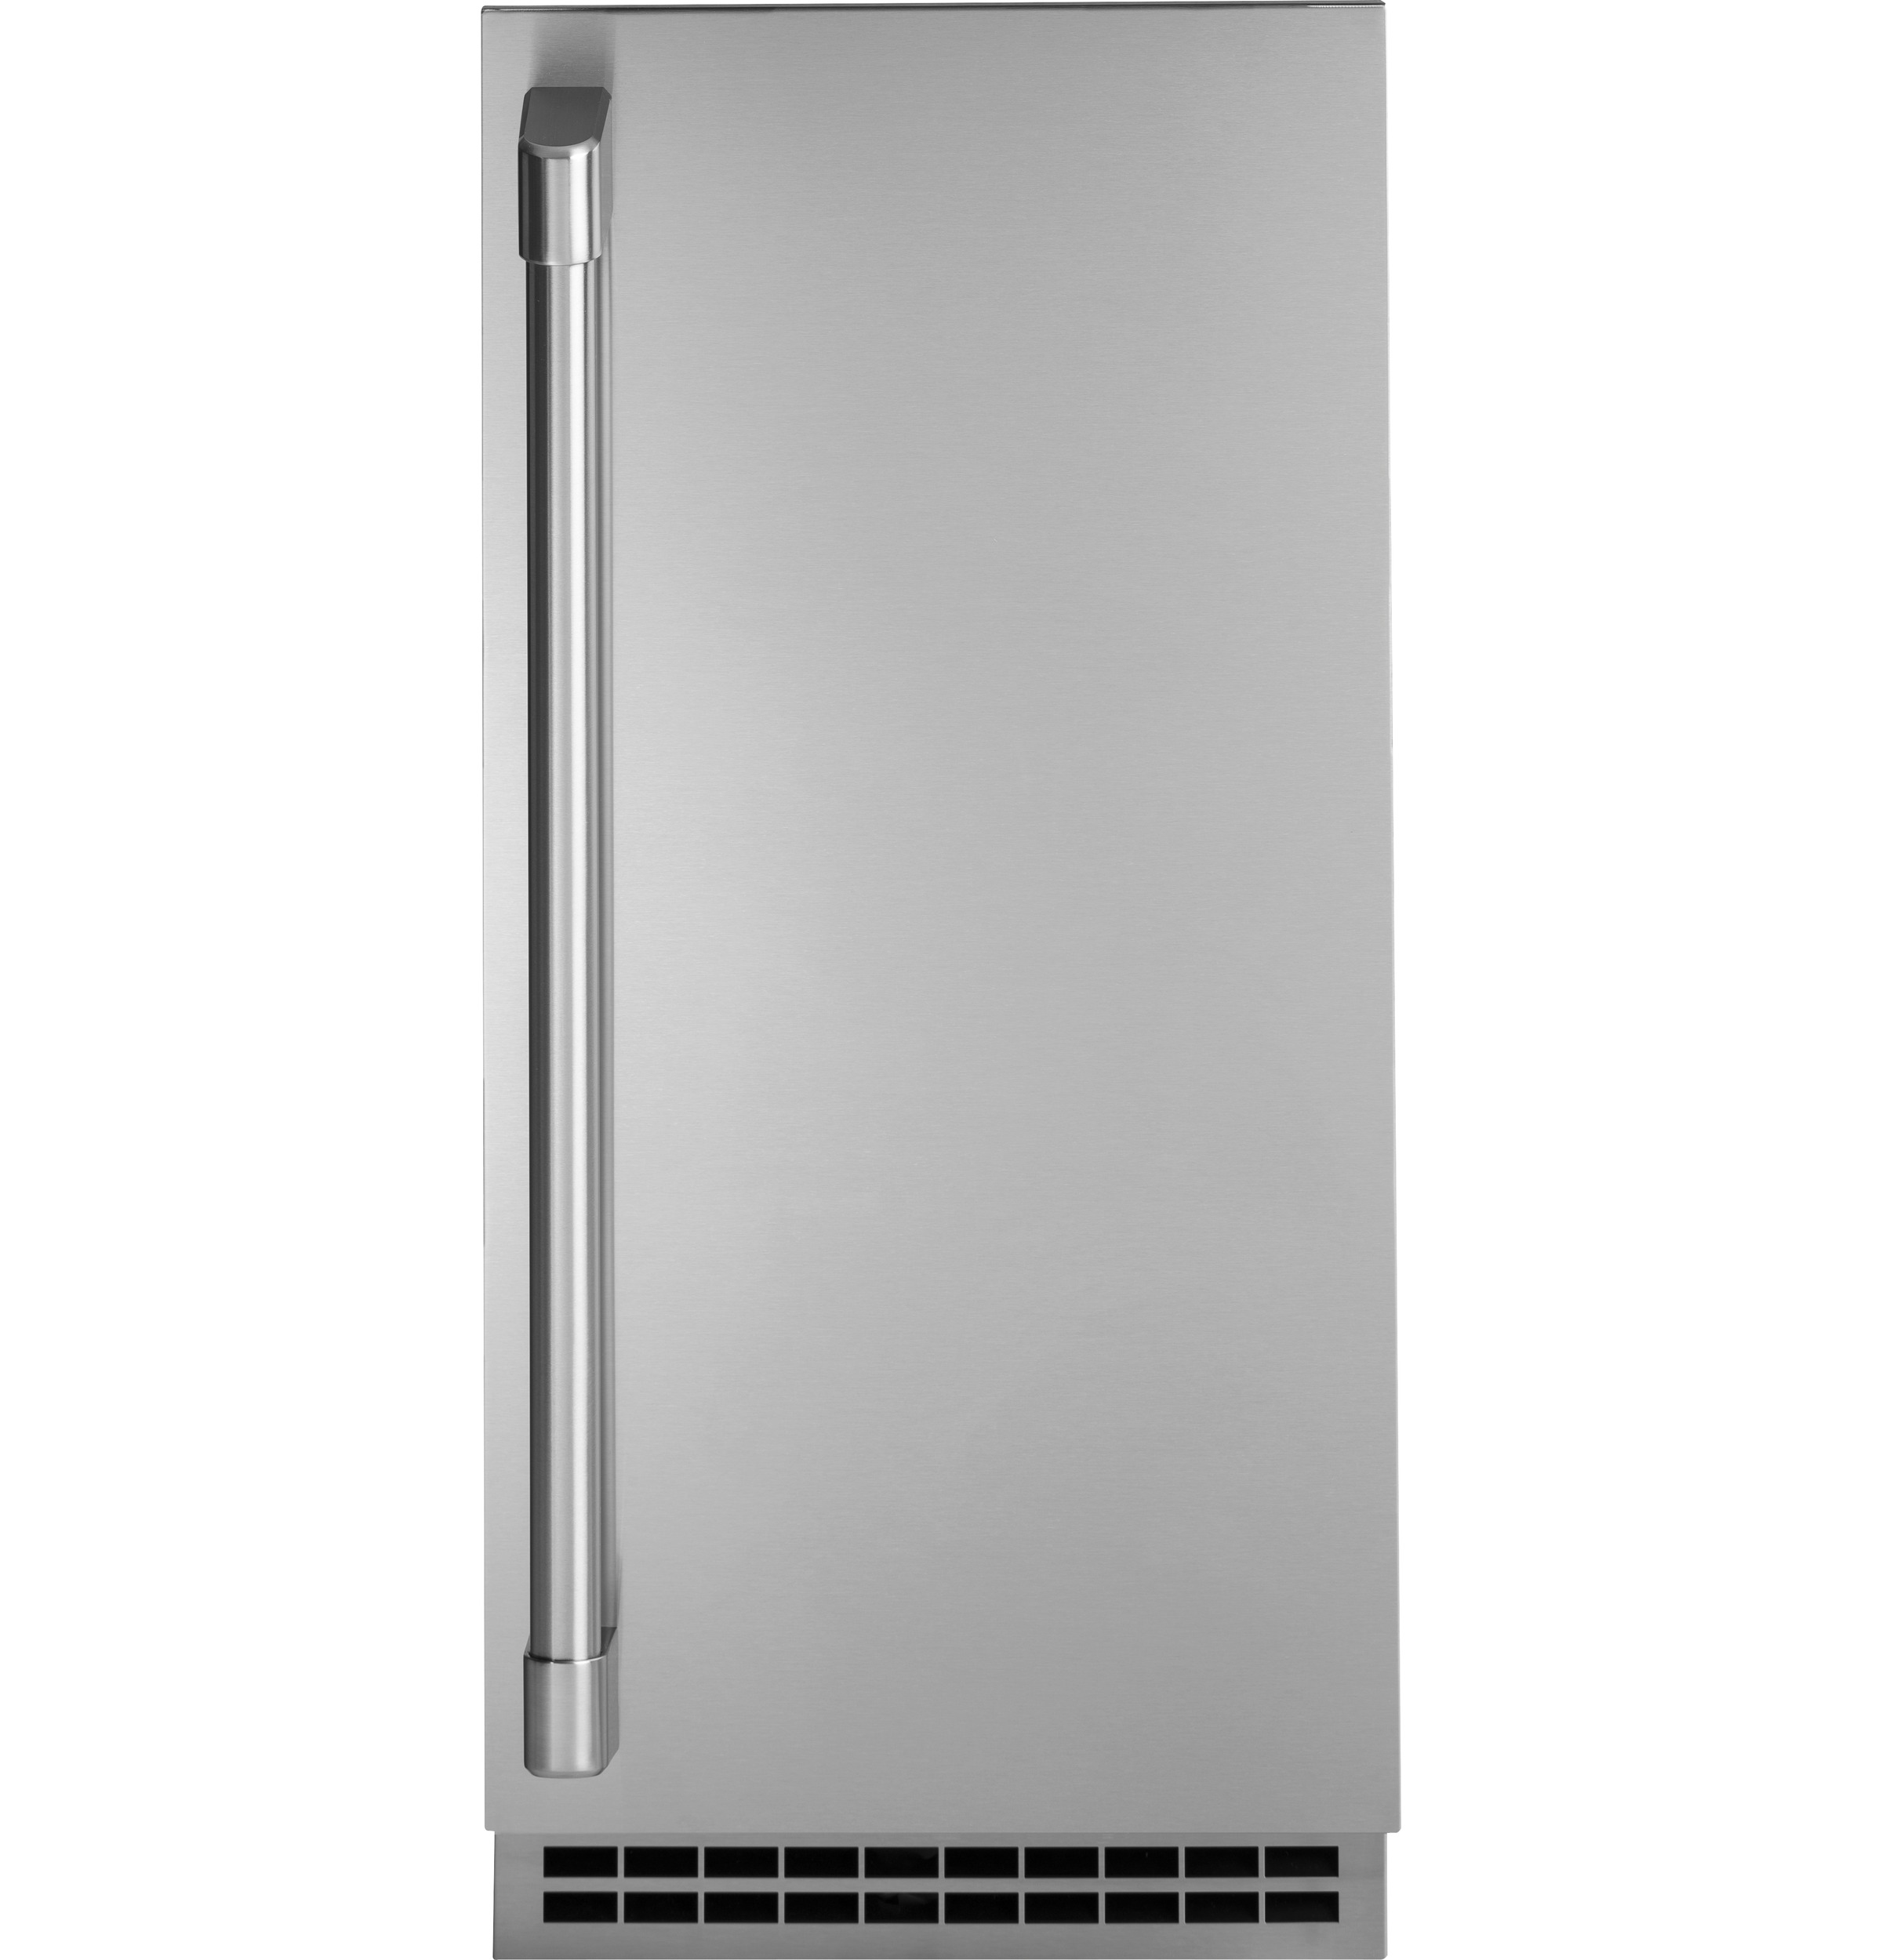 Cafe GE Cafe Series Stainless Steel Ice Maker Door Kit